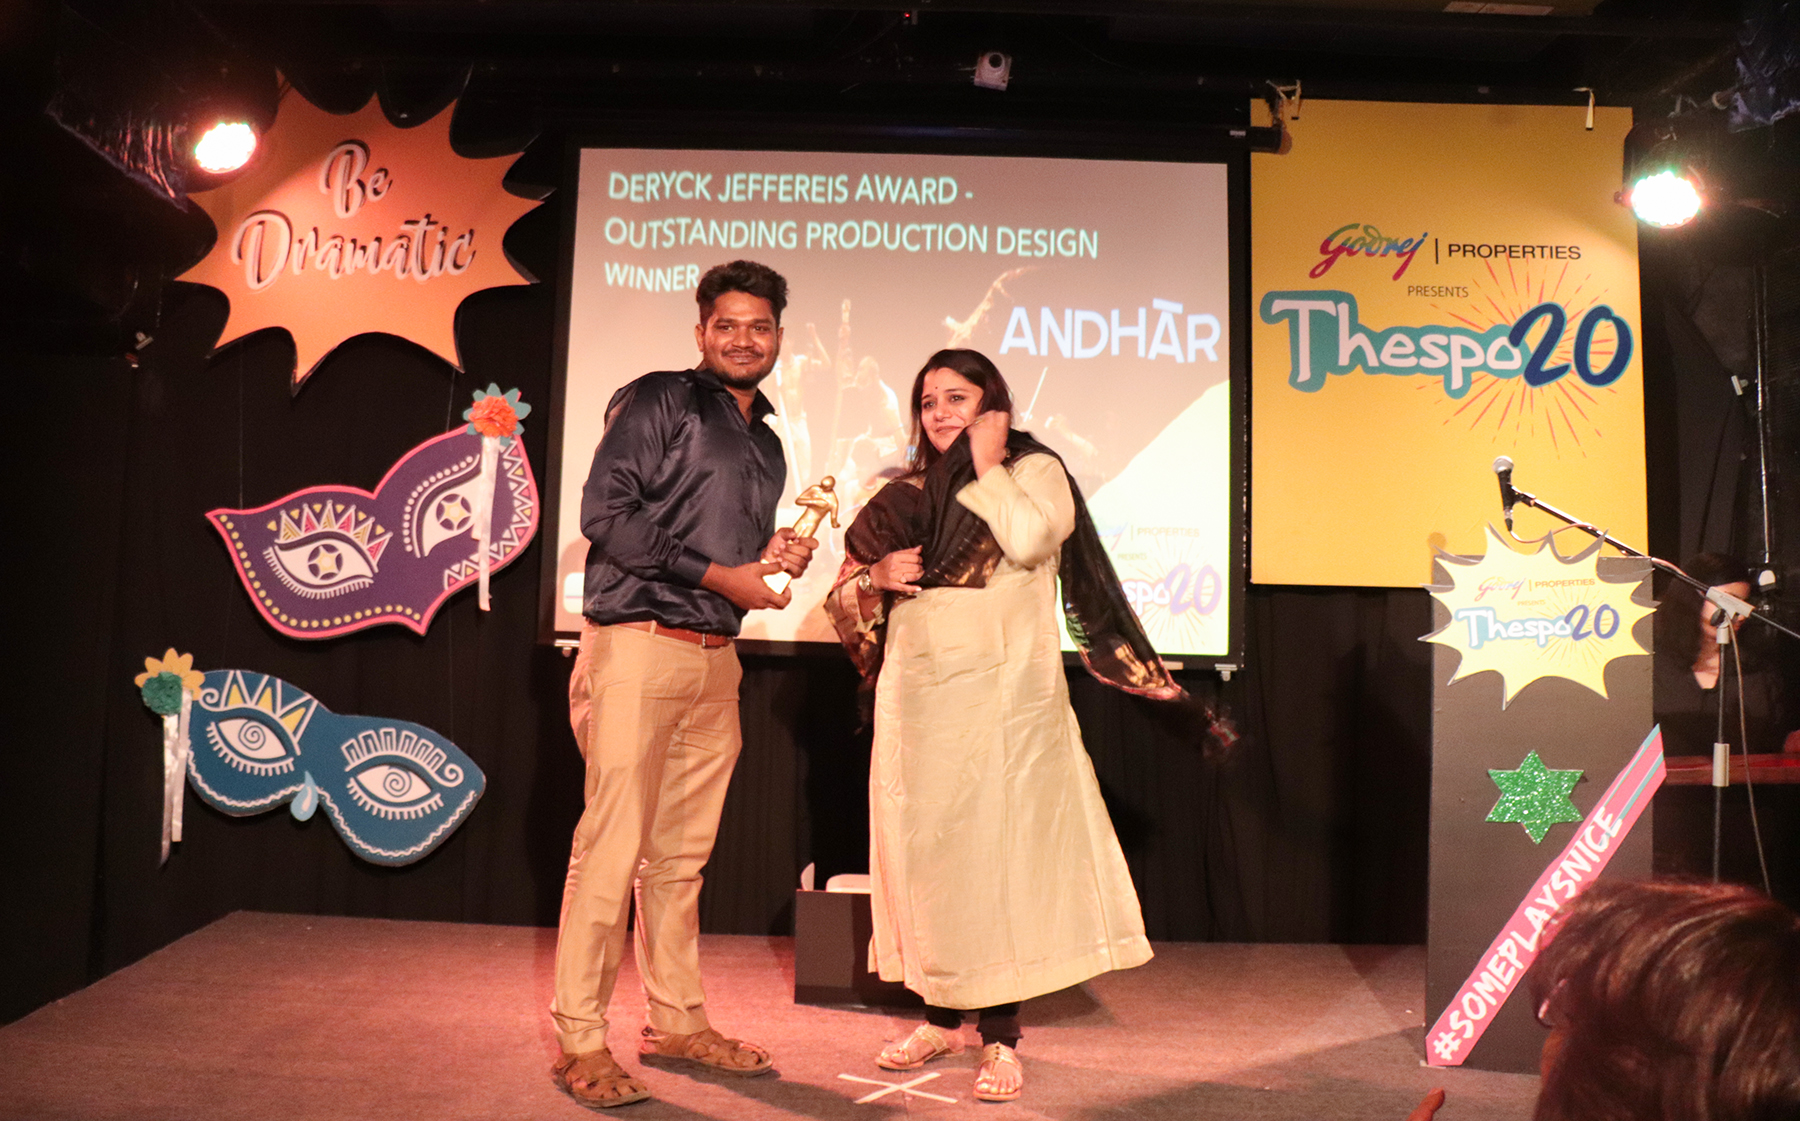 T20 Award - Deryck Jeffereis Award Outstanding Production Design - Andhar